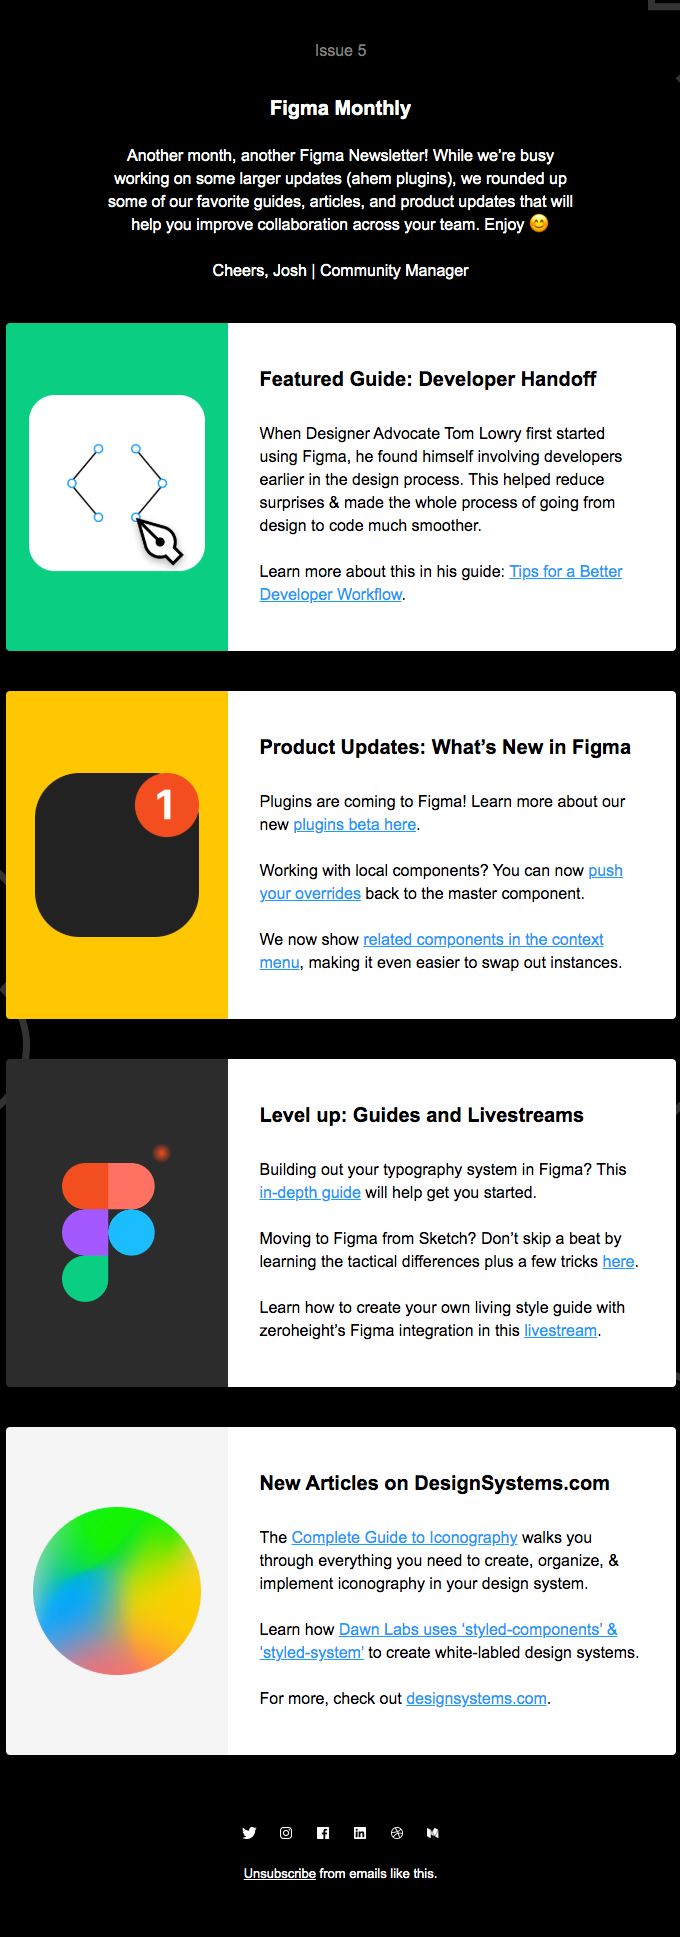 Figma Monthly - Product Updates ✅, New articles on DesignSystems.com 📝, and more! ✨